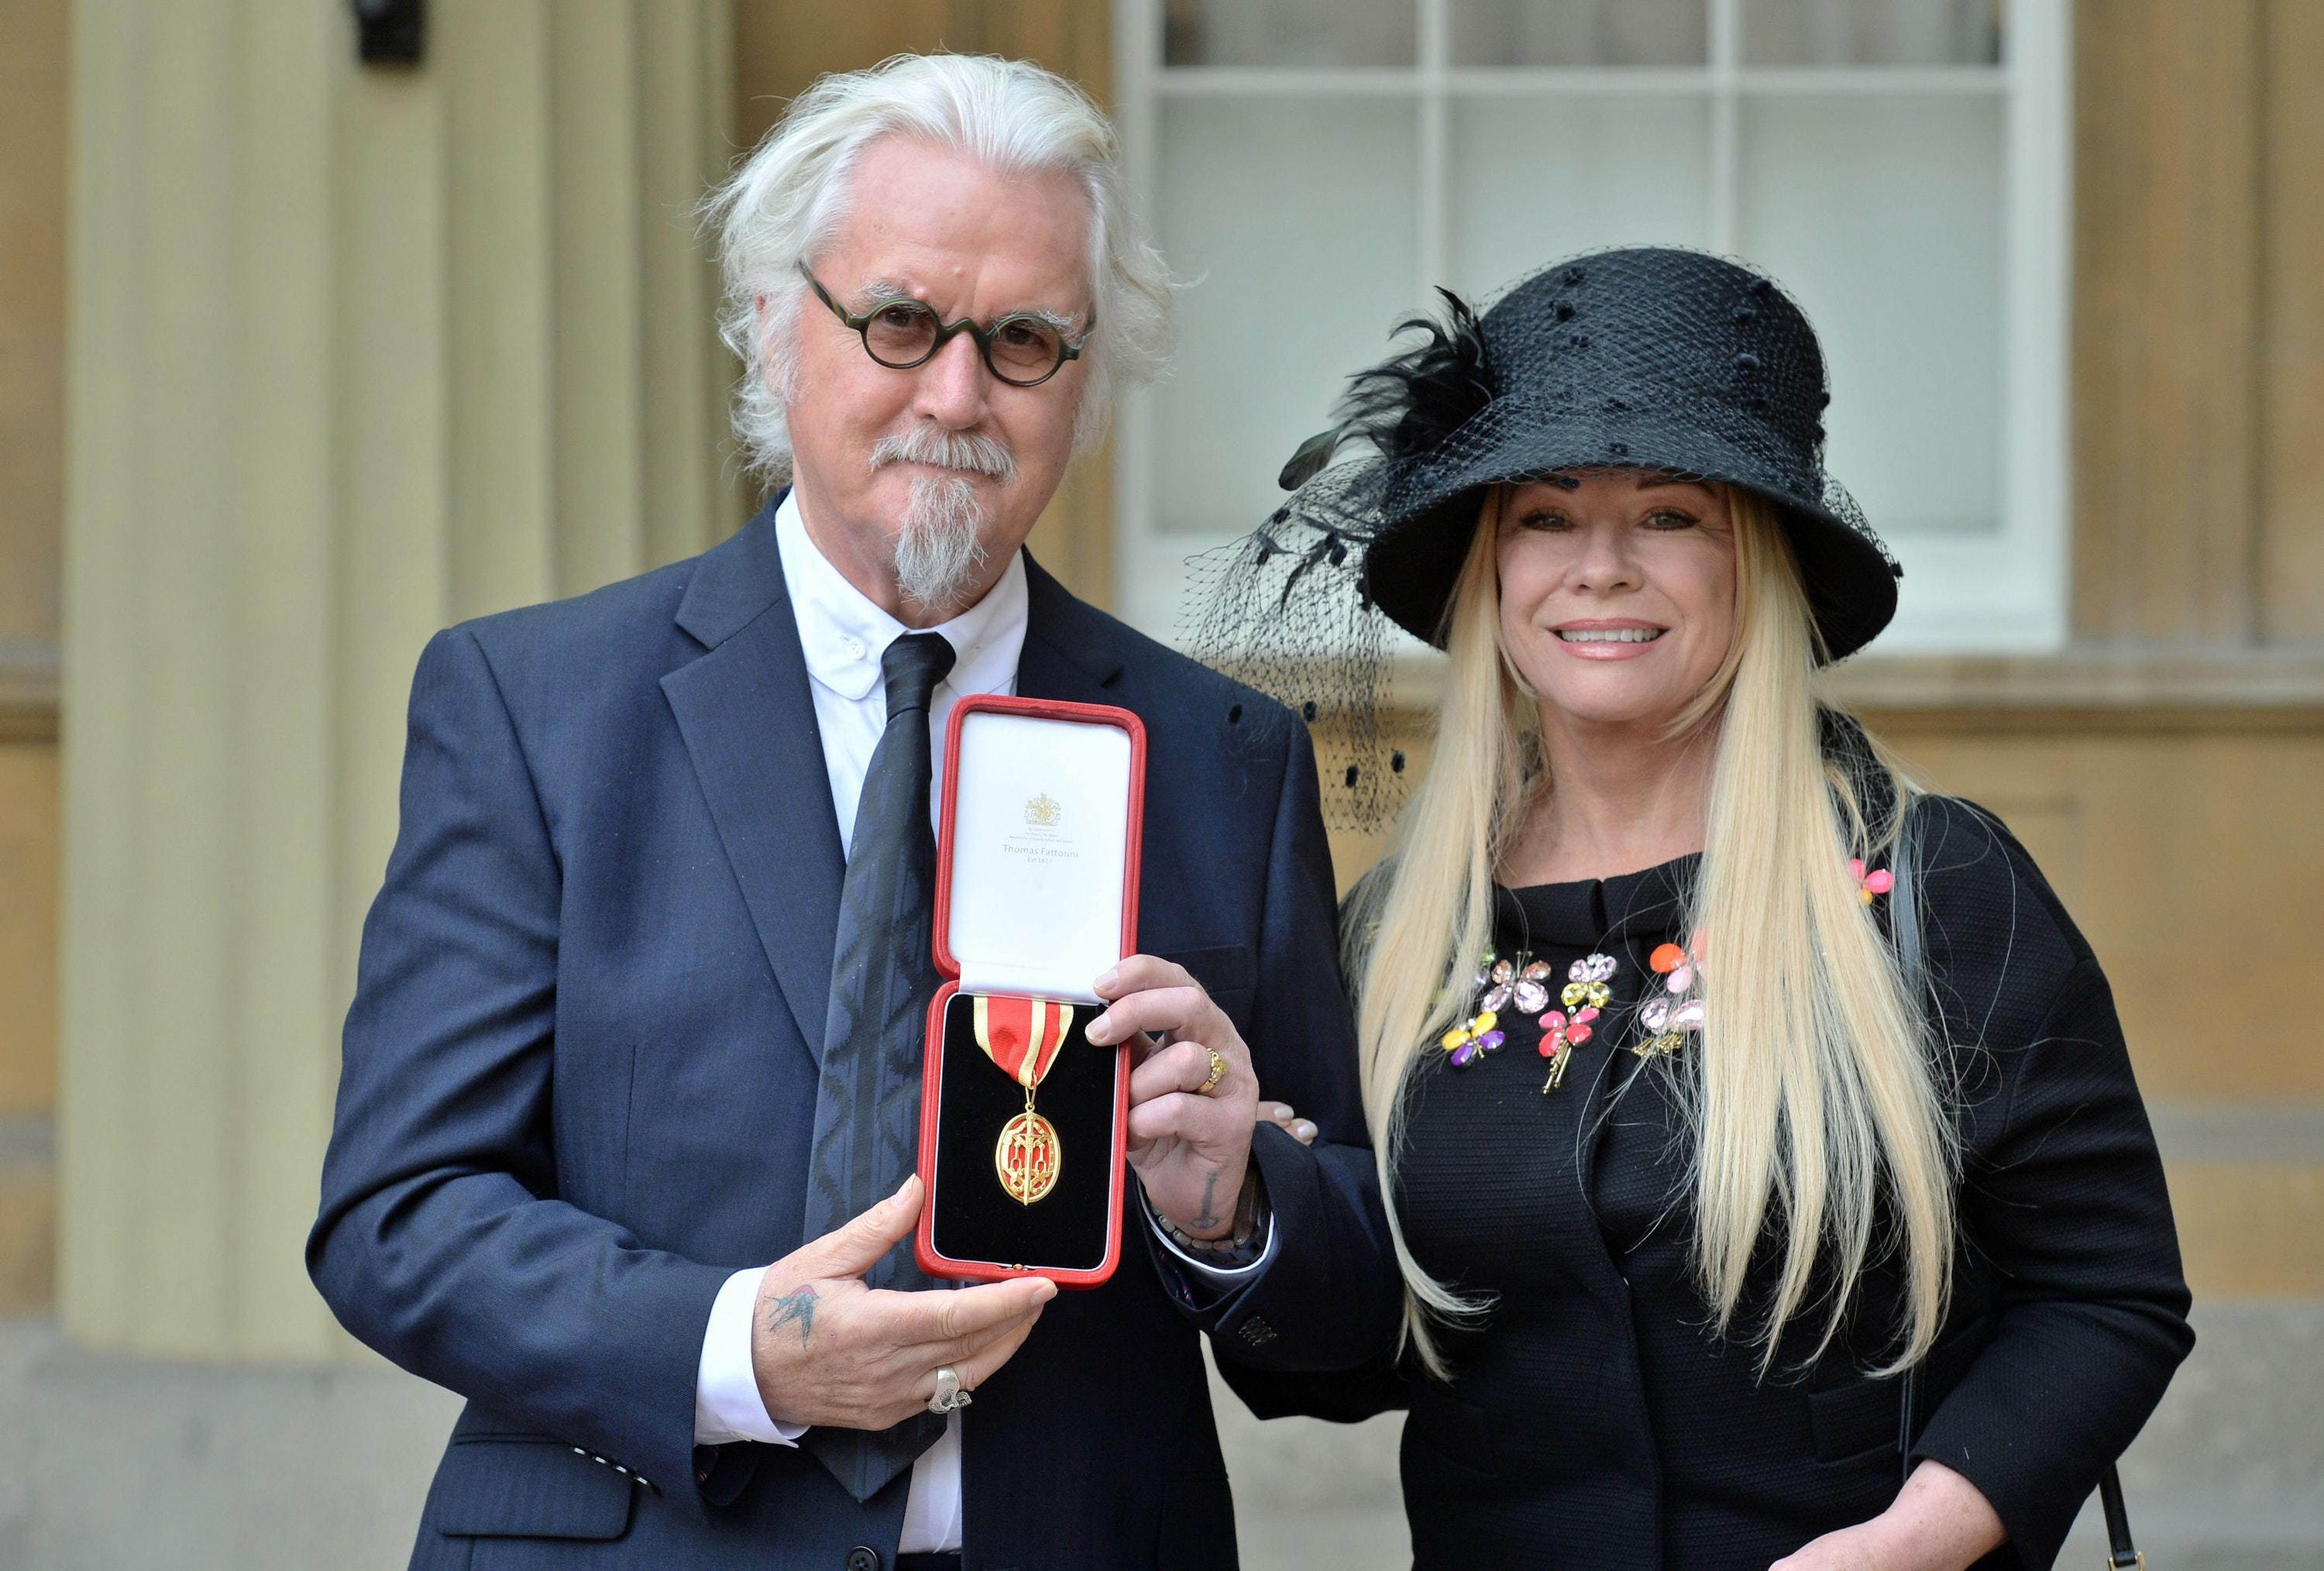 Sir Billy Connolly with his wife Pamela Stephenson after being knighted by the Duke of Cambridge during an Investiture ceremony at Buckingham Palace, London (PA)